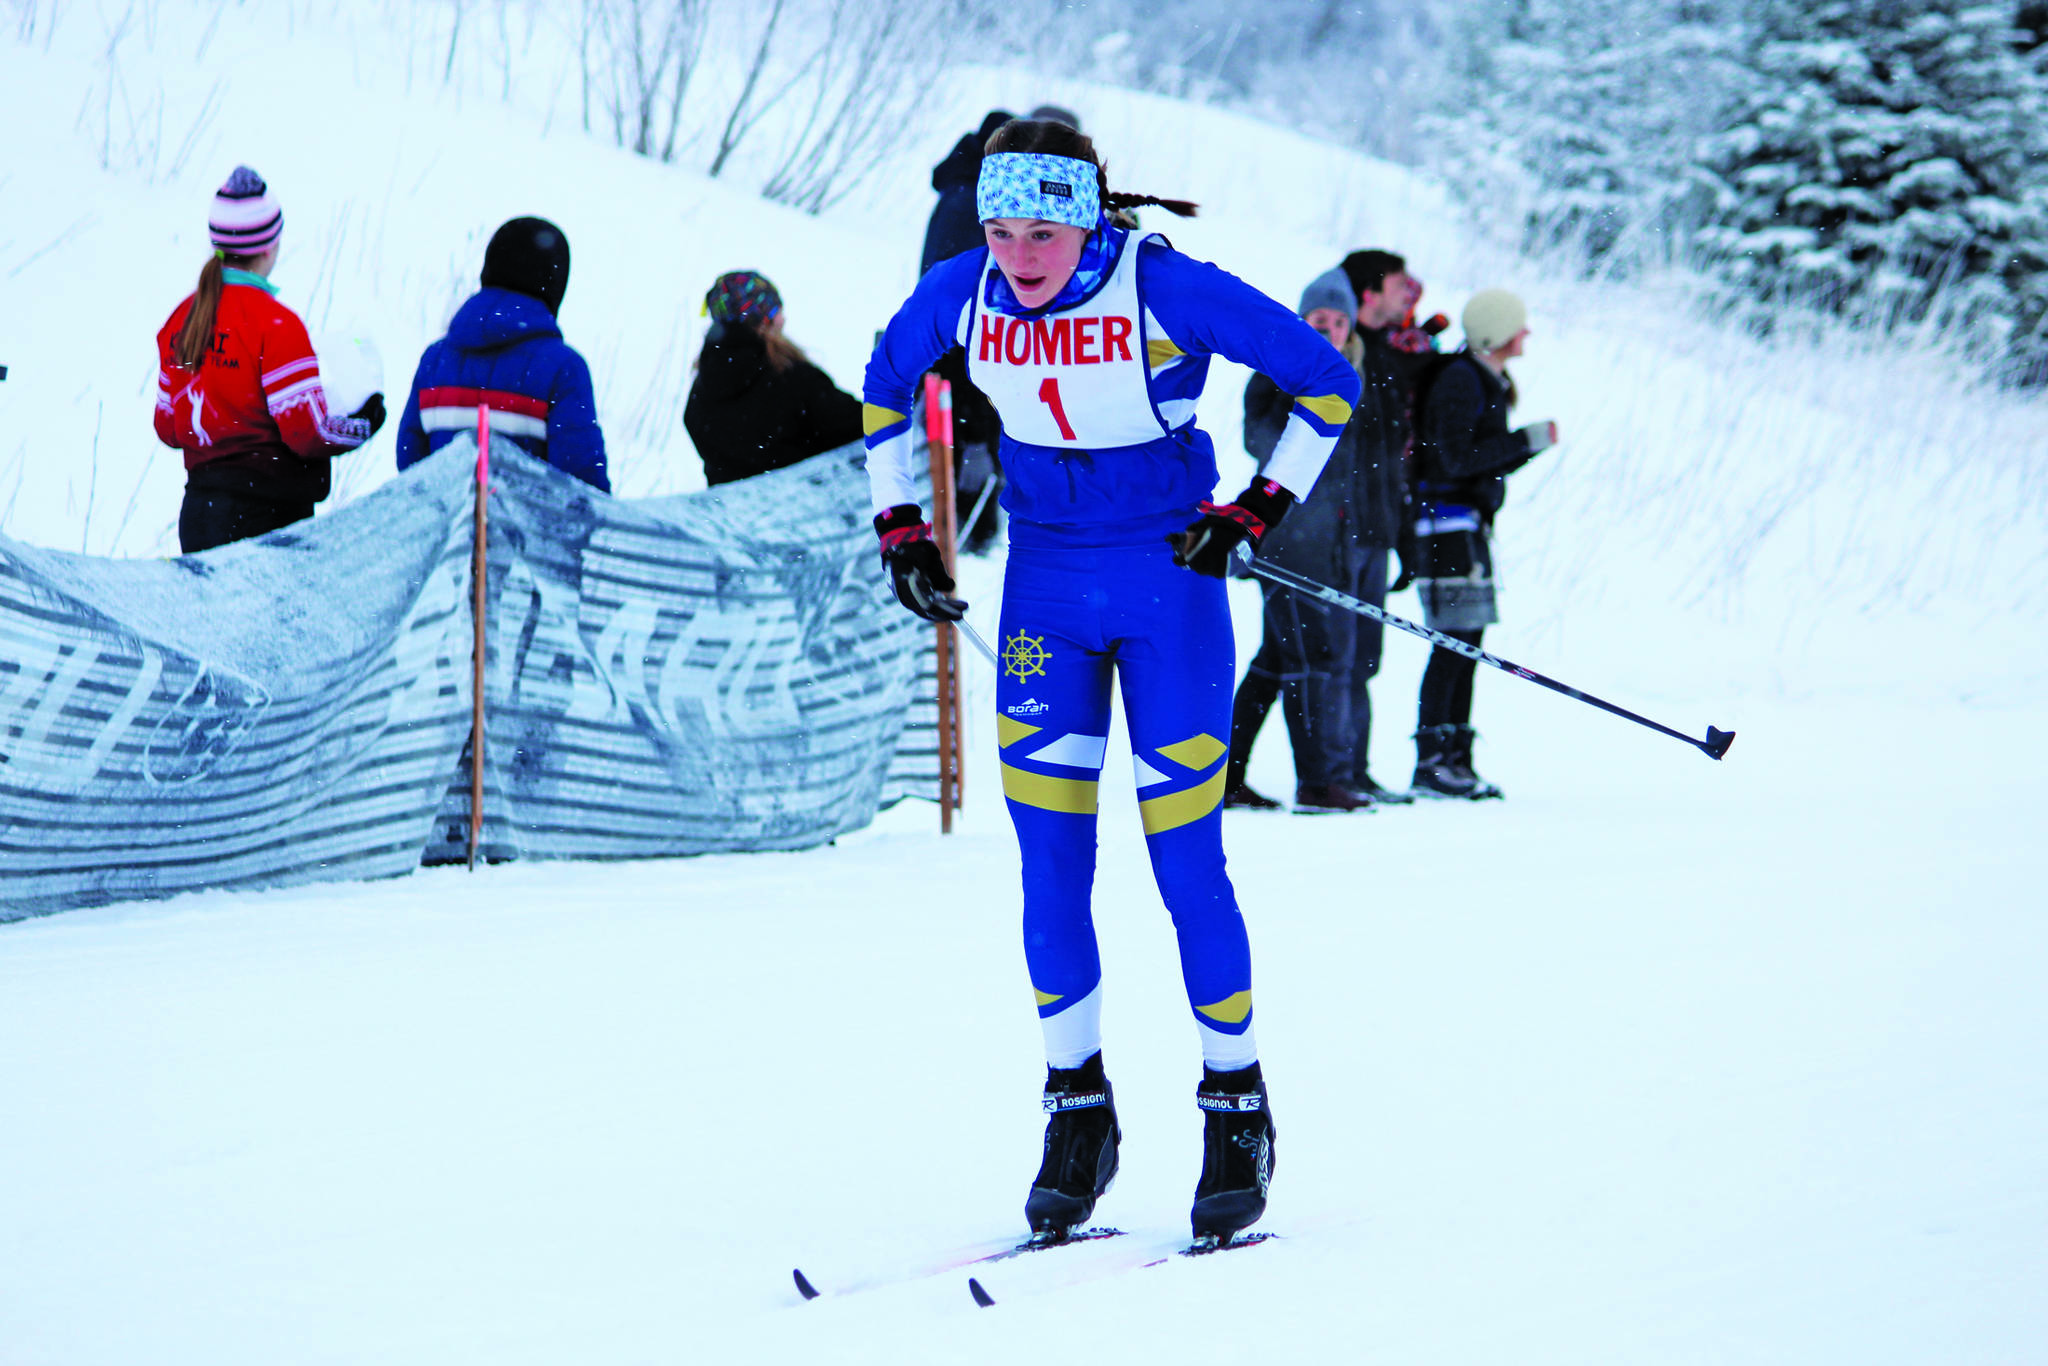 Homer's Autumn Daigle skis to first place in the varsity girls' 5-kilometer classic race Friday, Jan. 31, 2020 during the Homer Invite at the Lookout Mountain Trails on Ohlson Mountain Road near Homer, Alaska. (Photo by Megan Pacer/Homer News)